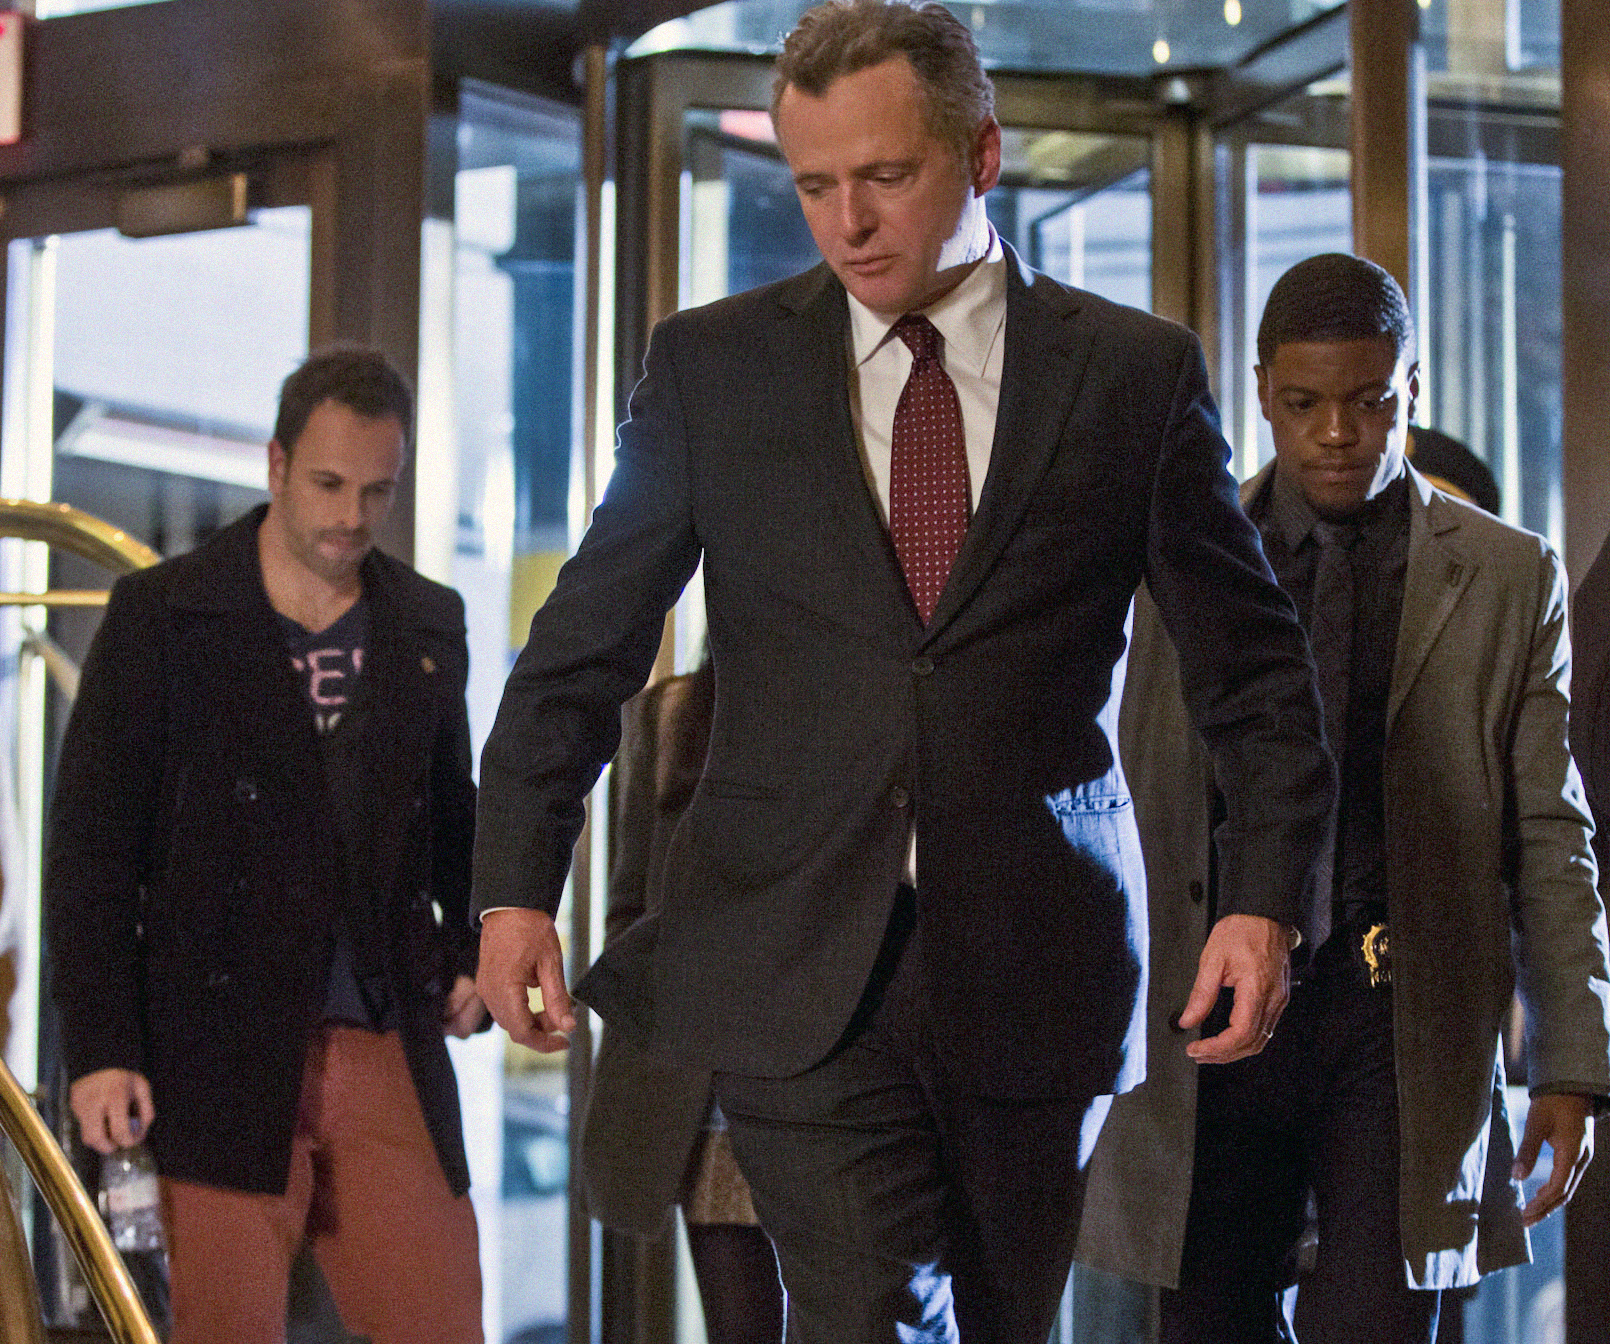 Sherlock, Gregson and Detective Bell